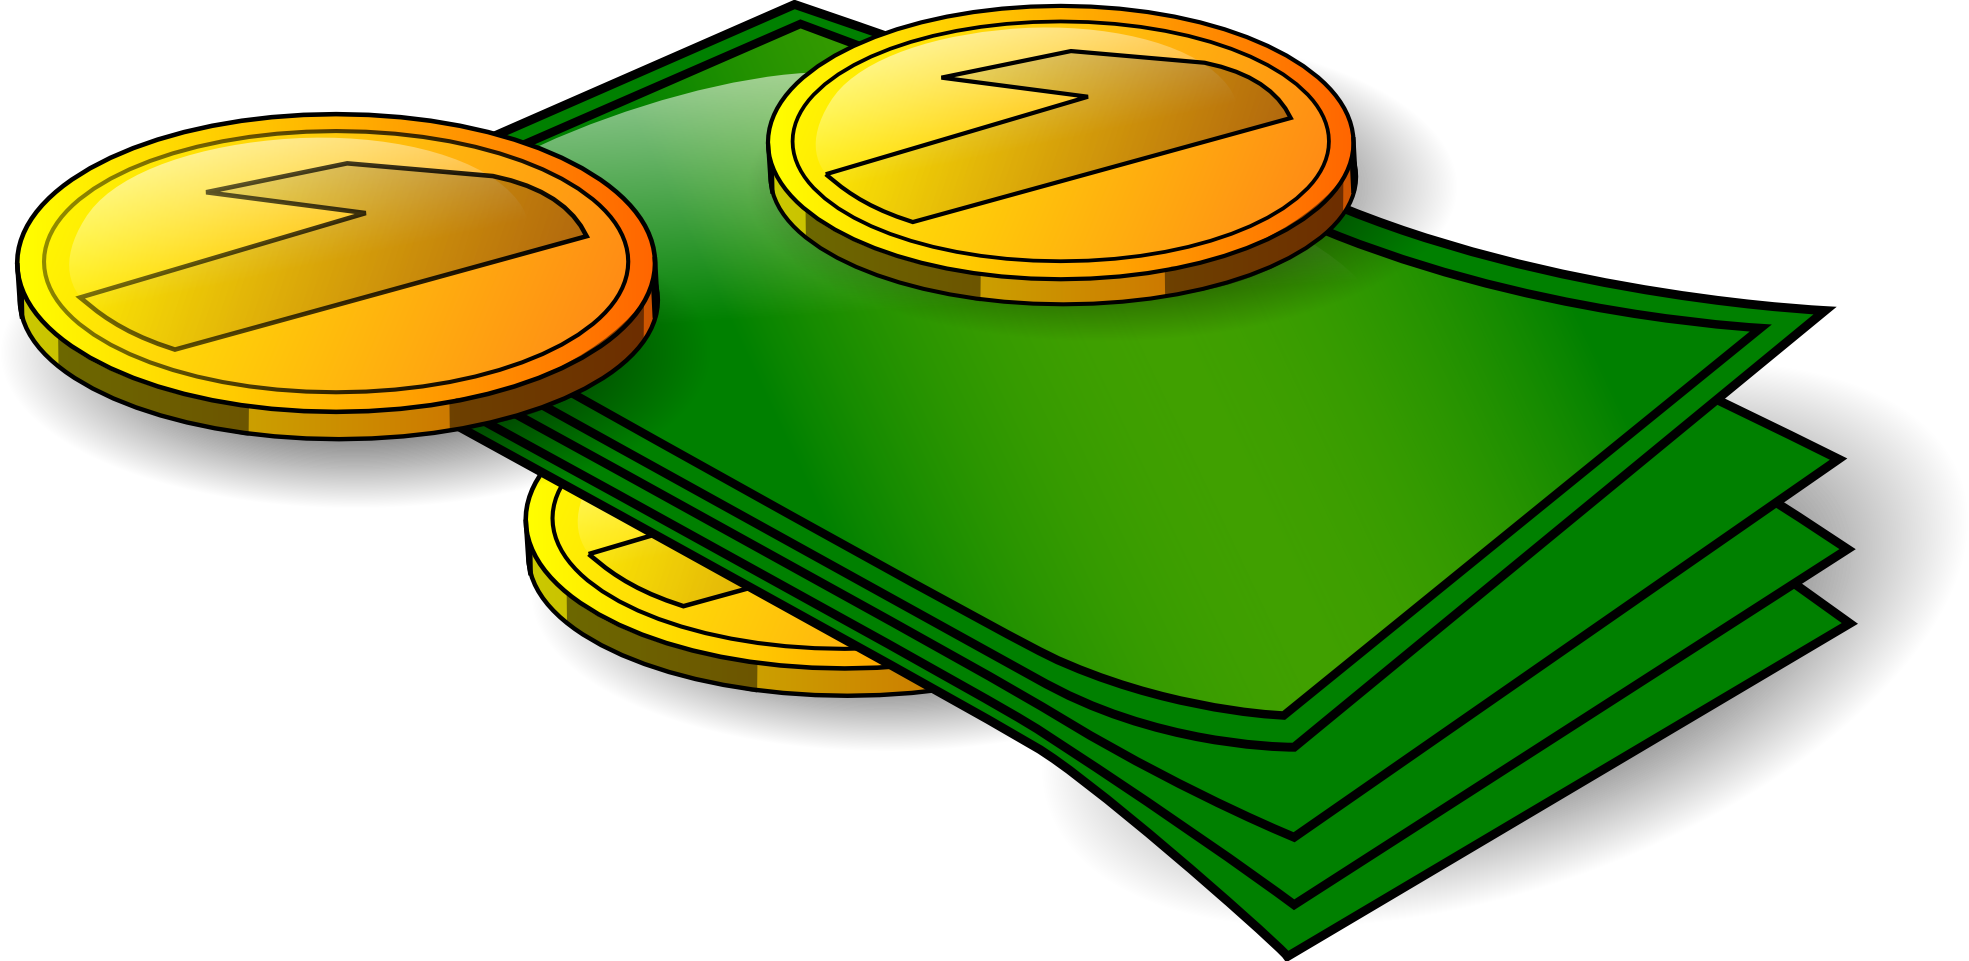 Giving money image clipart jpg library Pot Of Money Clipart - Clipart Kid jpg library